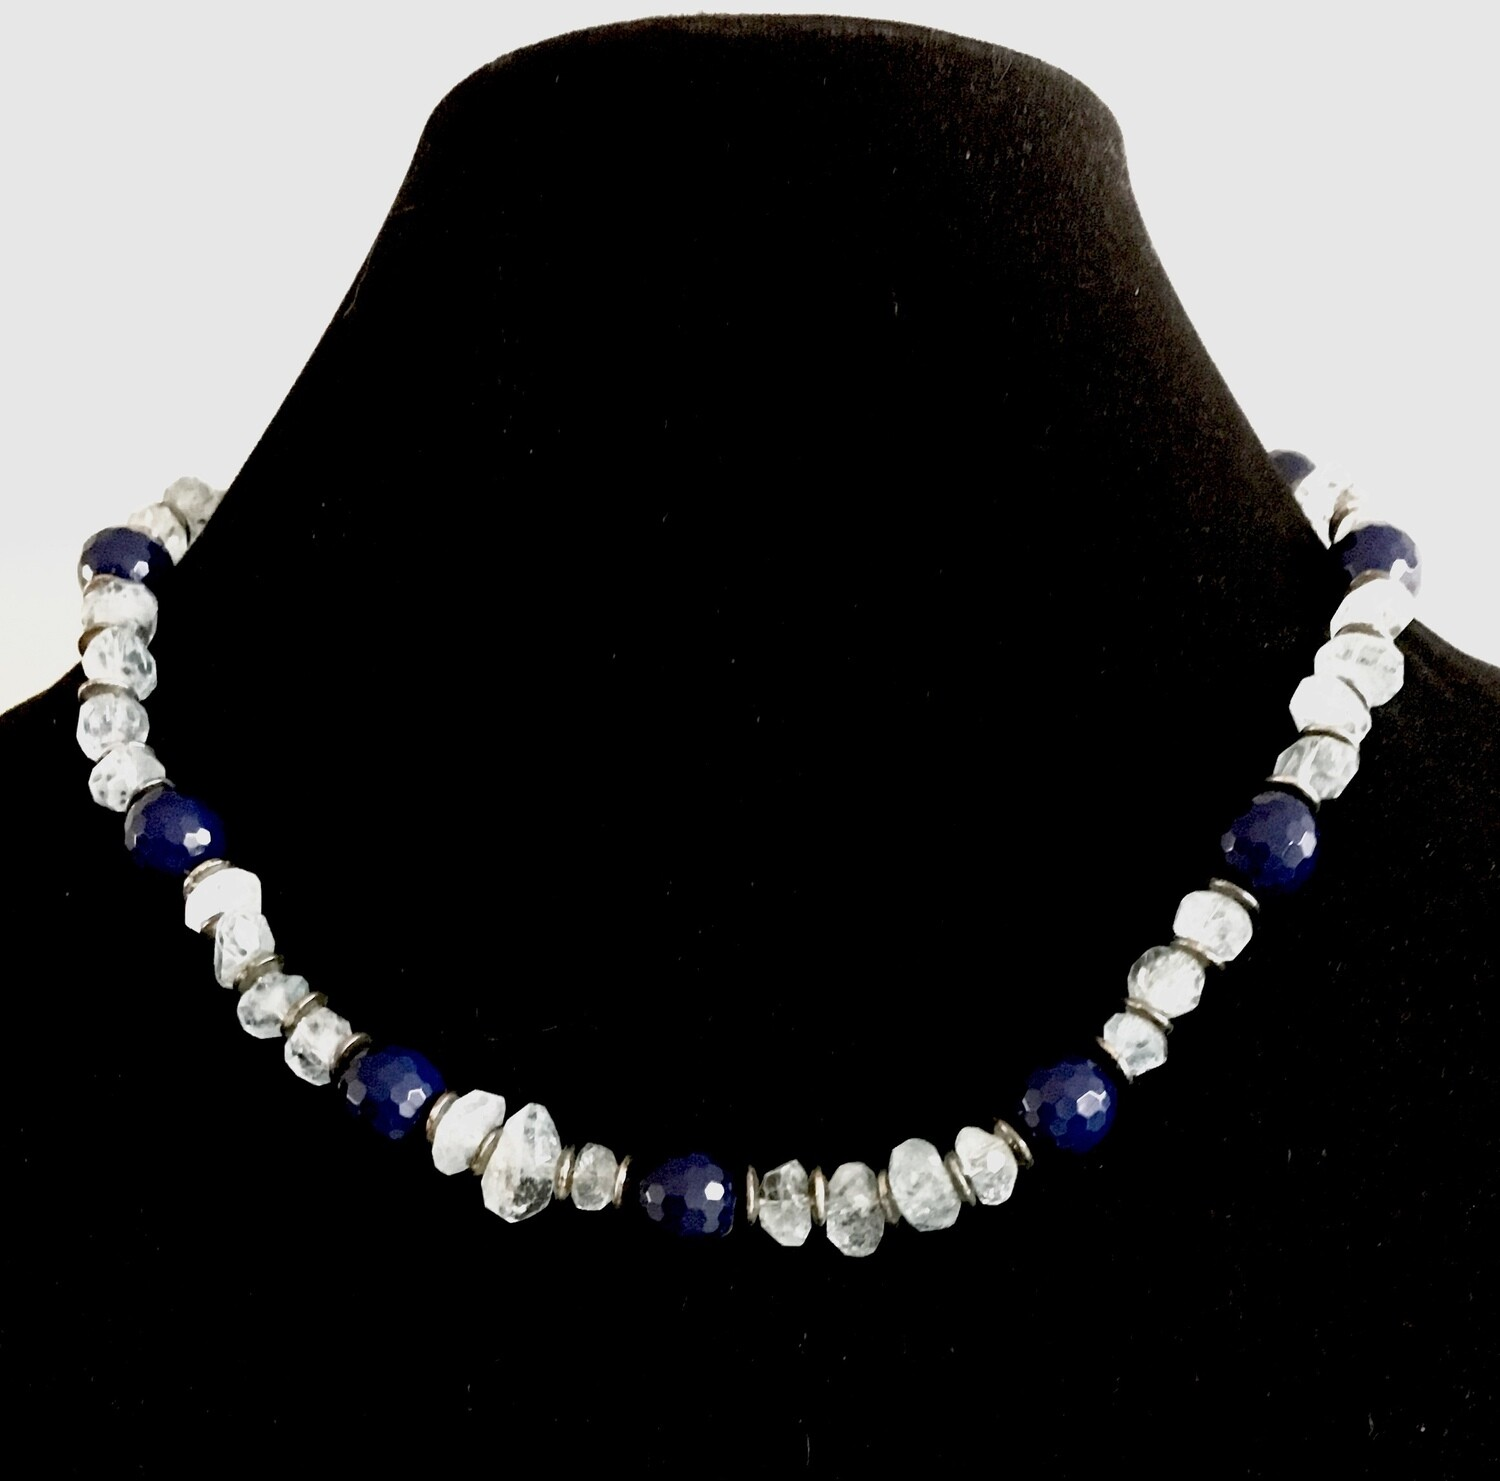 White and blue faceted beads necklace